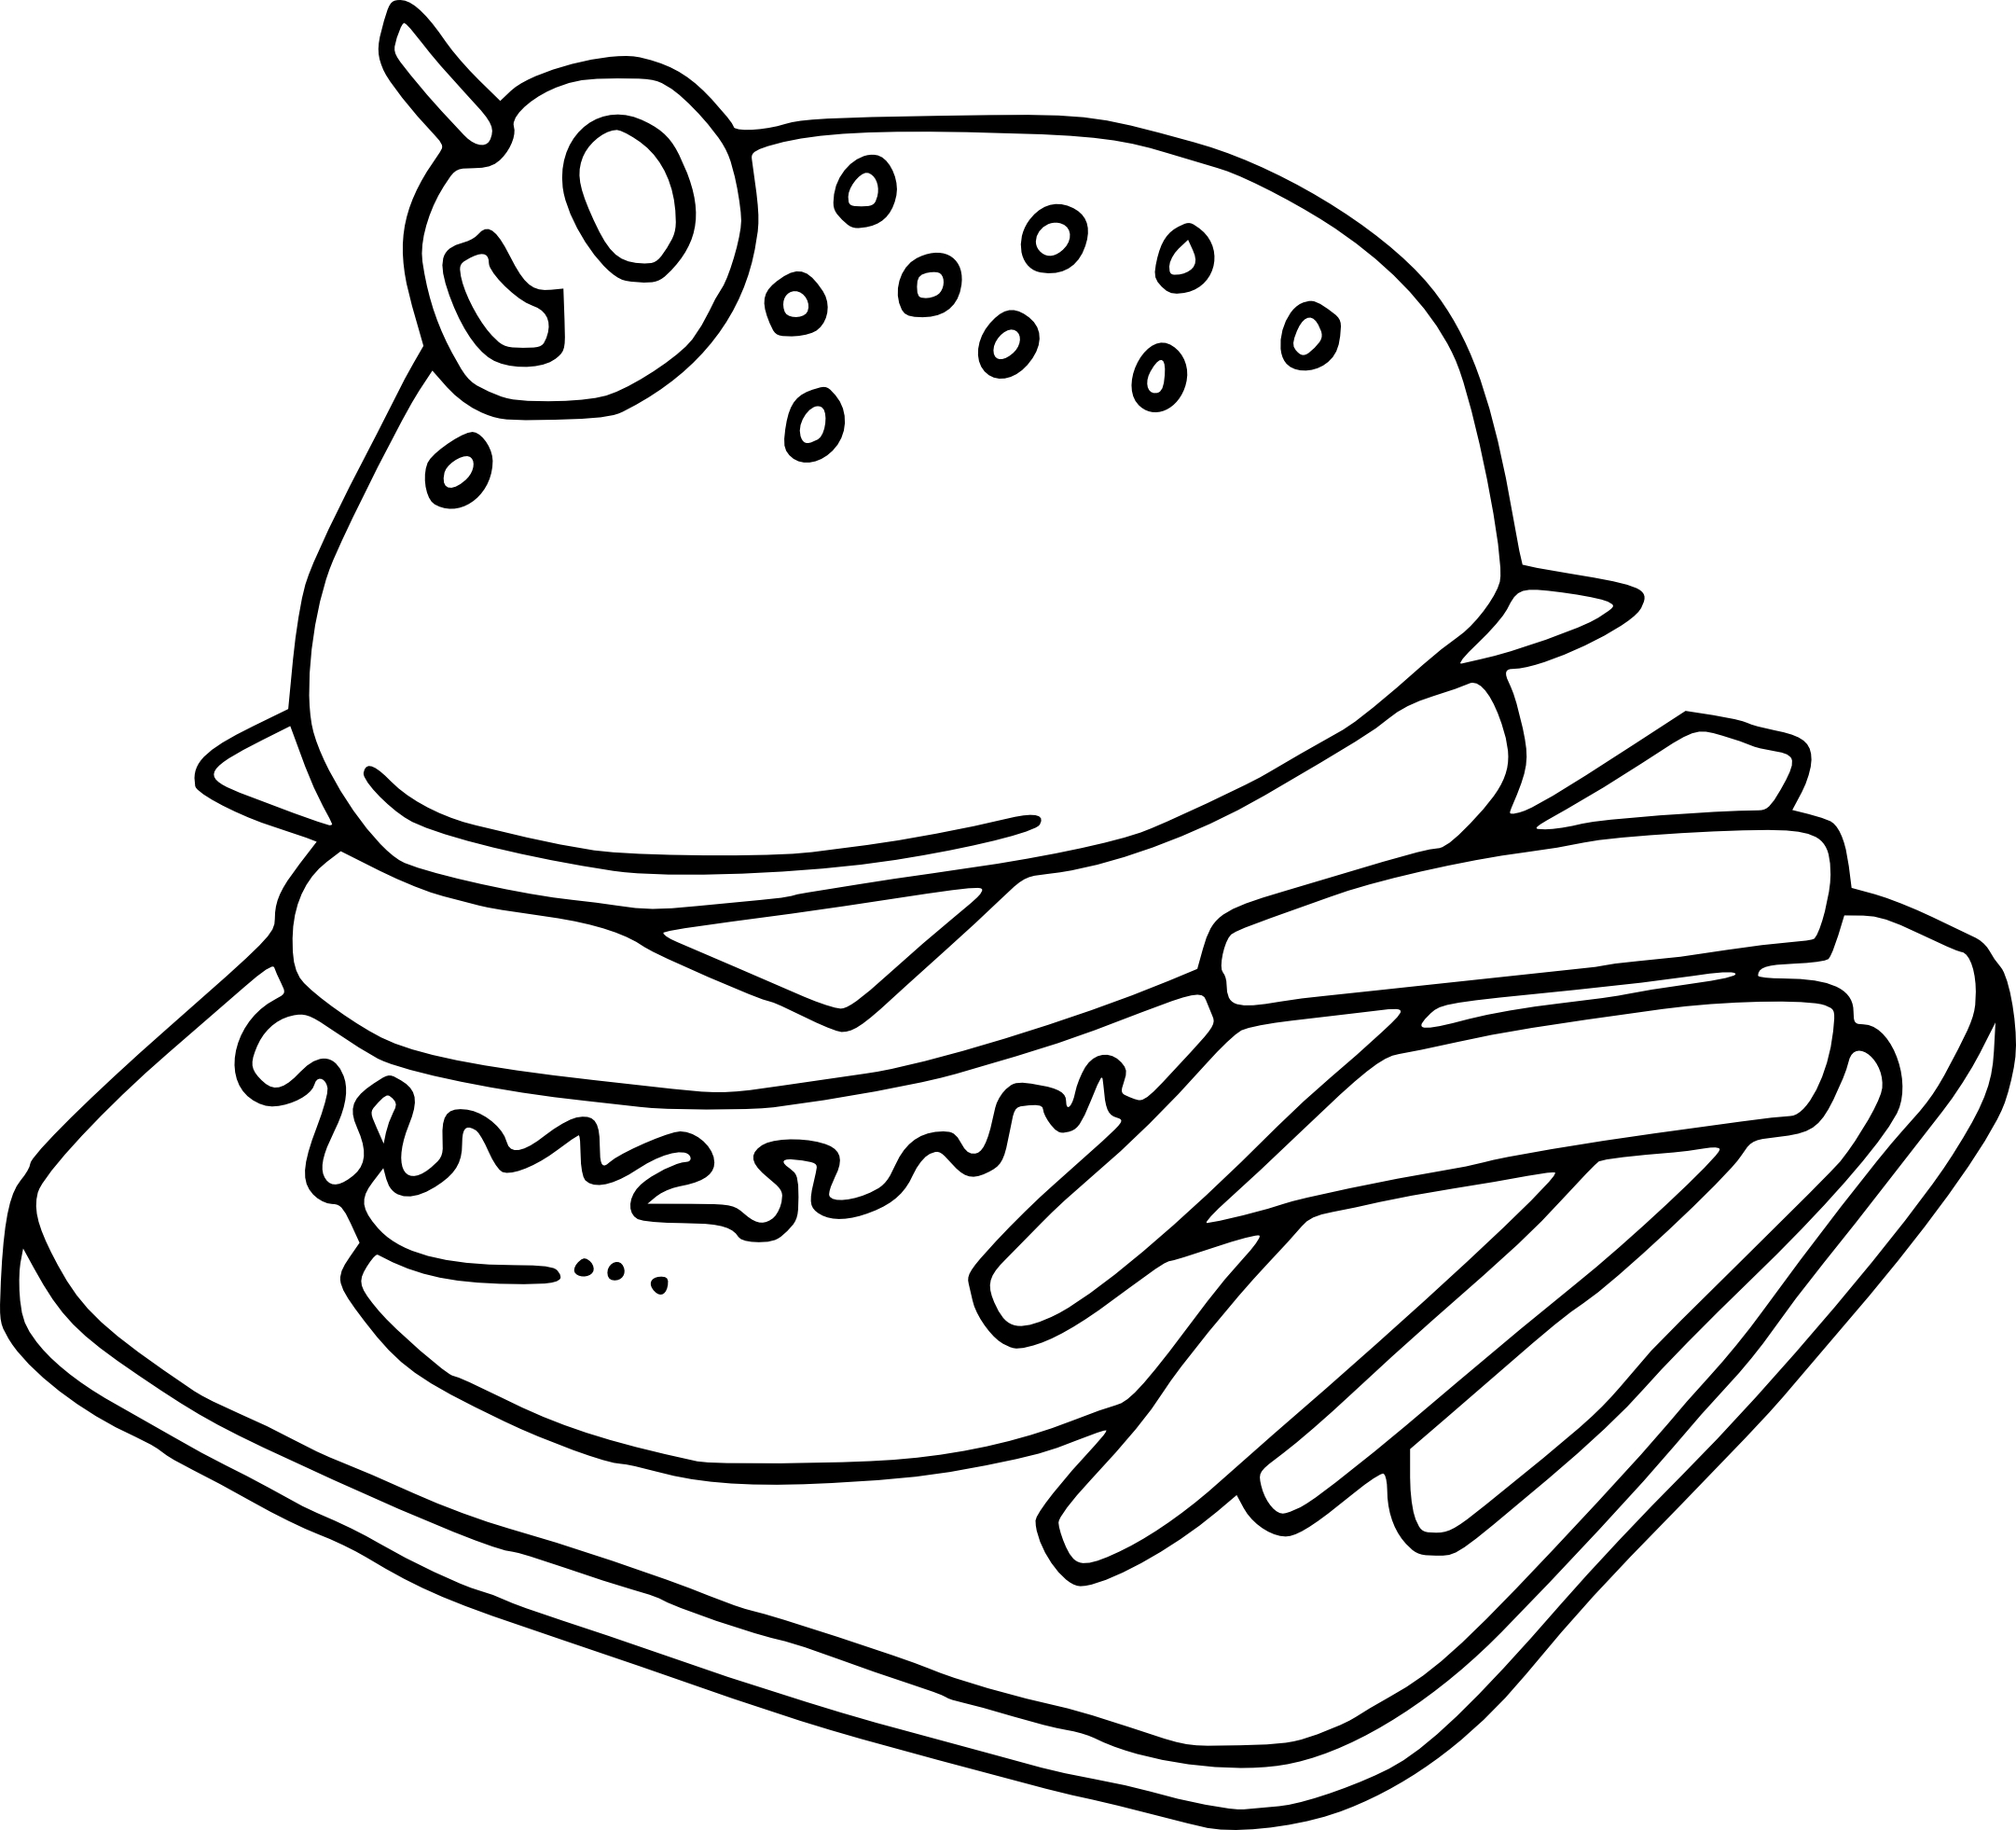 Coloriage hamburger et frites